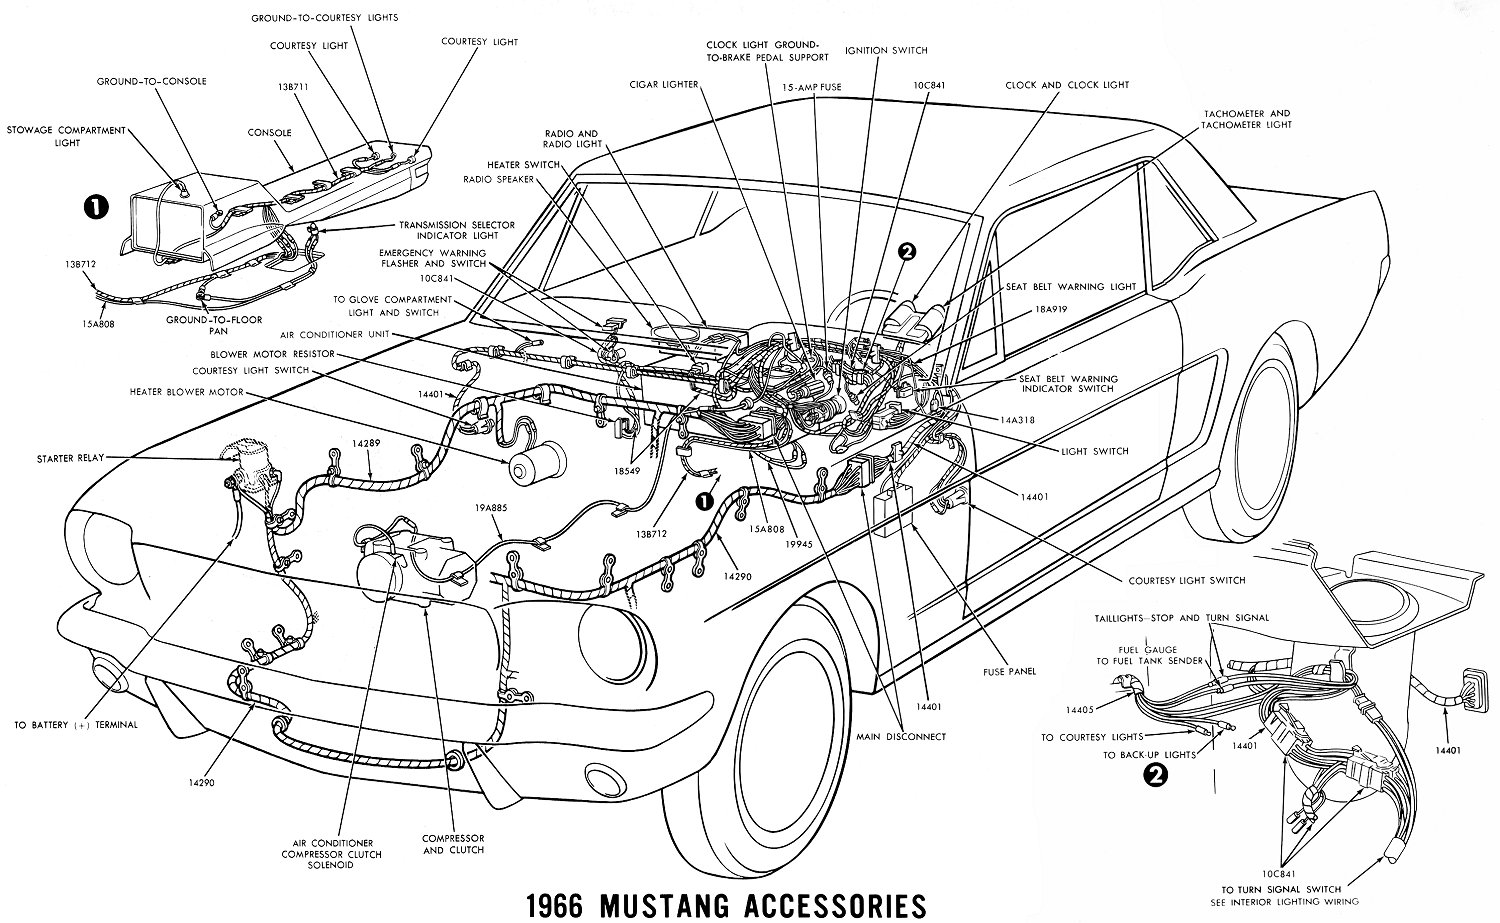 66acces 1966 mustang wiring diagrams average joe restoration mustang fuel system diagram at bayanpartner.co